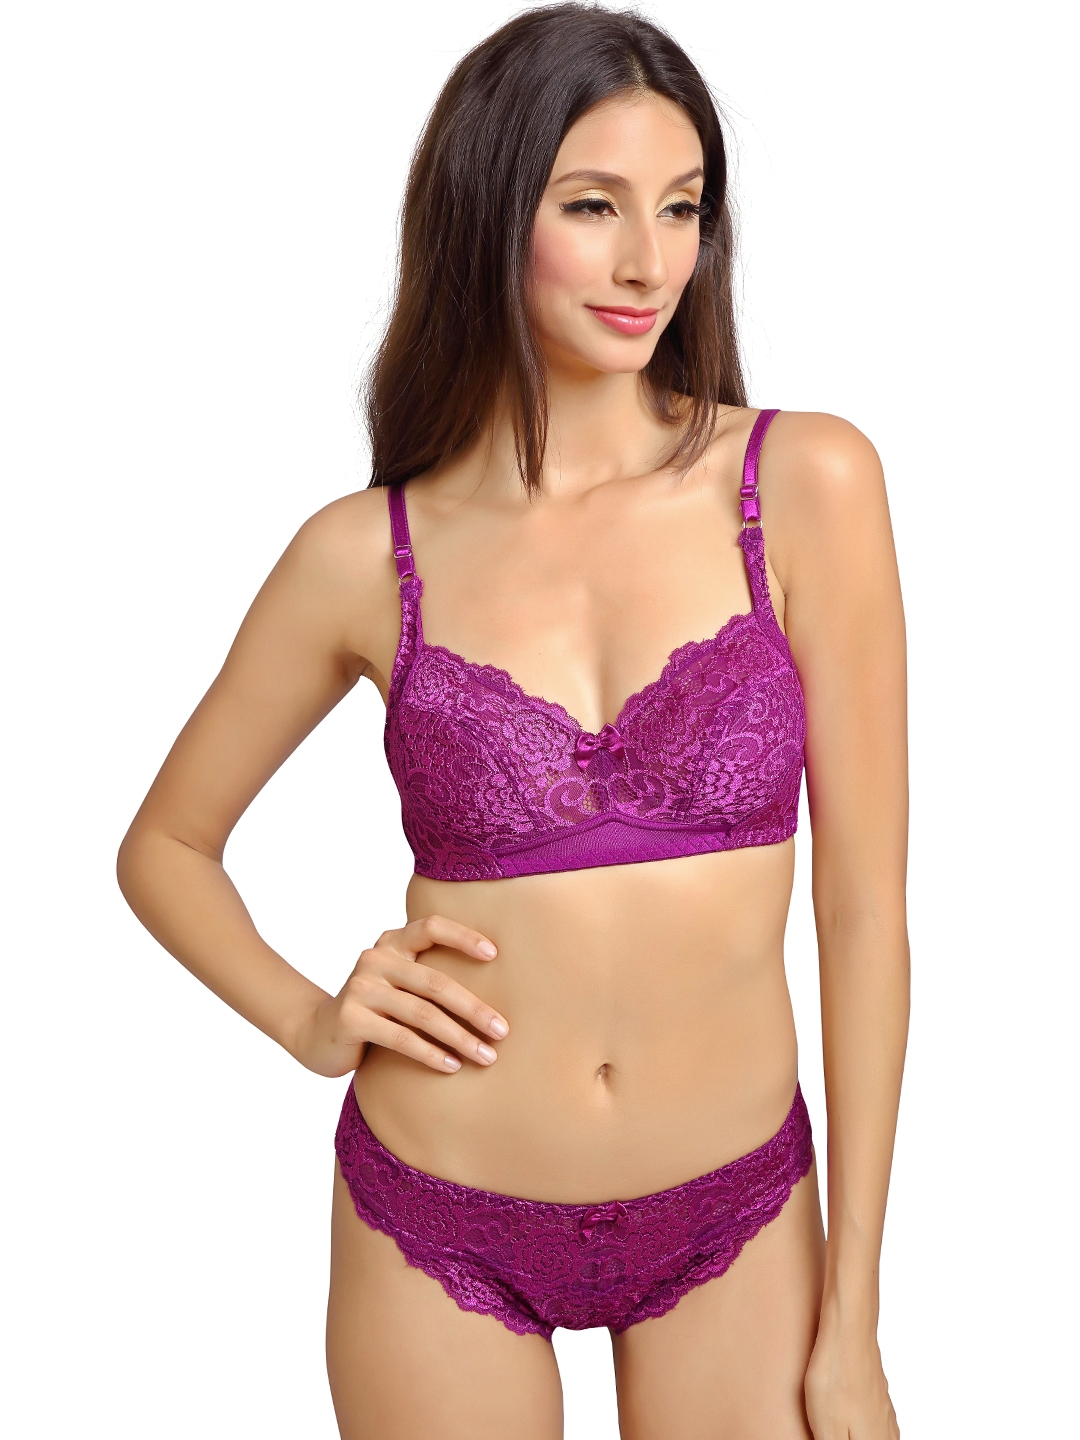 6bc261b13f Buy Lady Love Purple Lace Lingerie Set LLSET5009 - Lingerie Set for ...